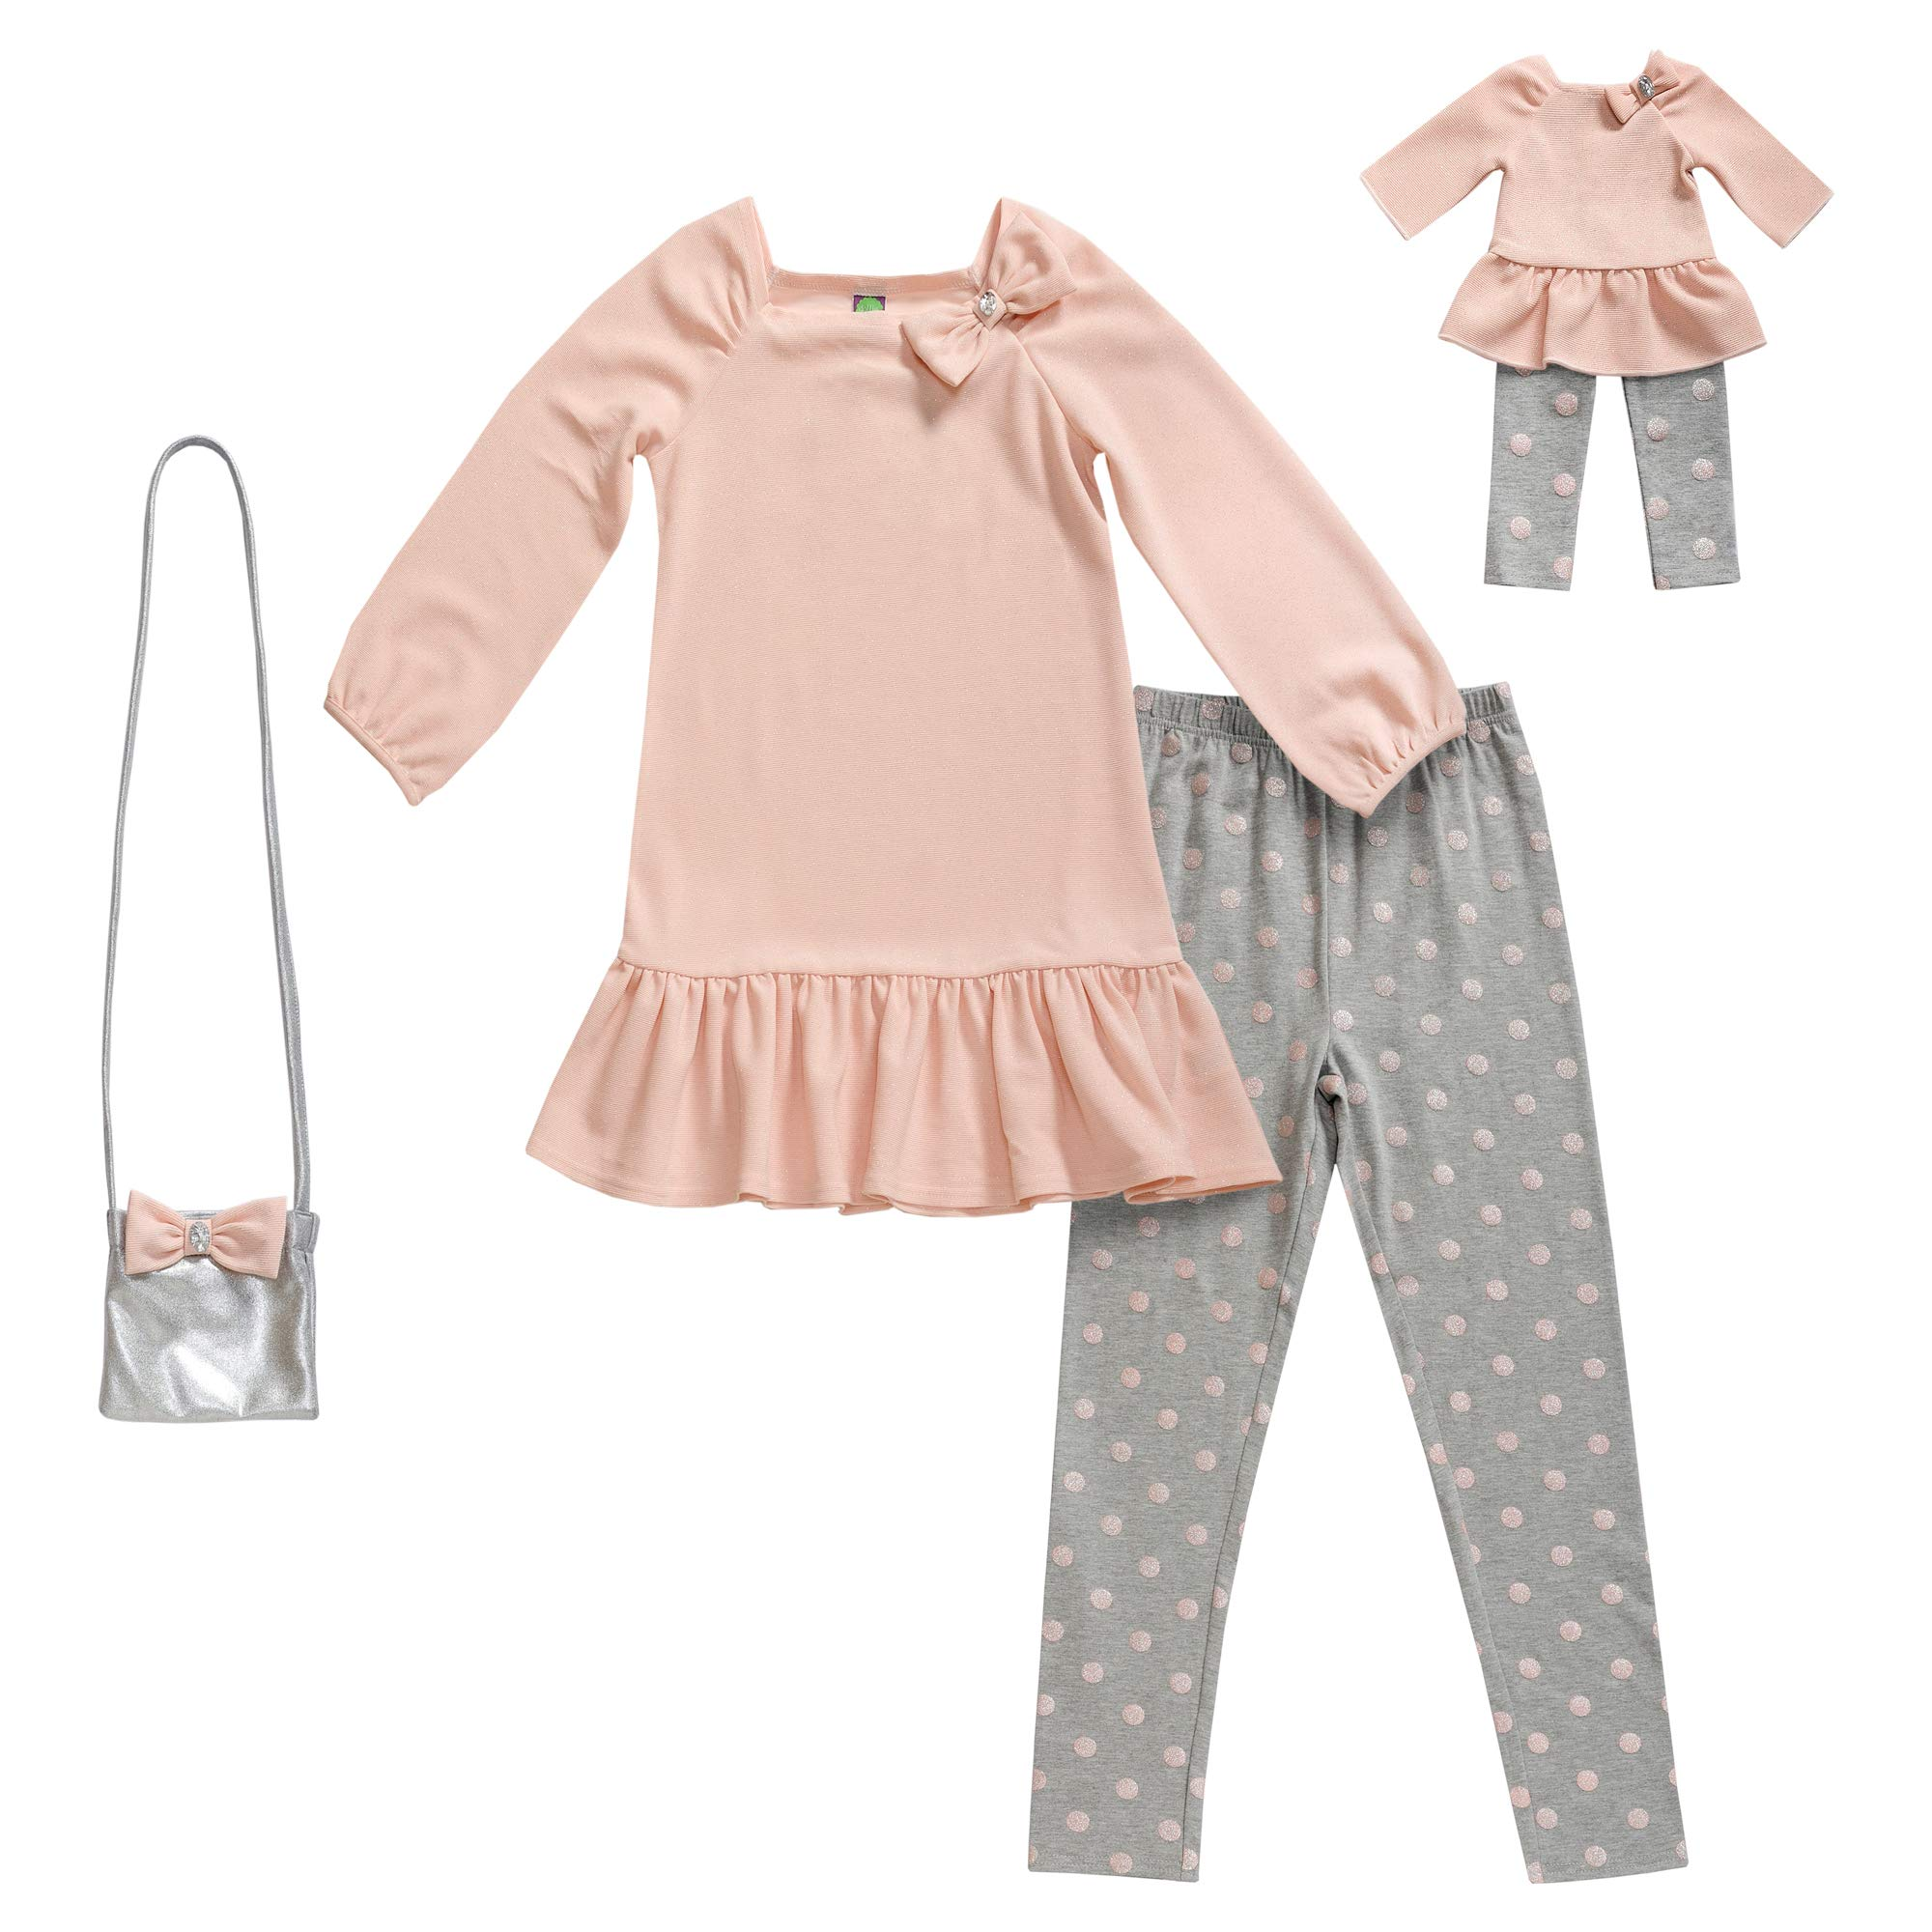 Dollie & Me Girls' Apparel Knit Legging Set with Matching Doll Outfit in, Pink, Size 7 by Dollie & Me